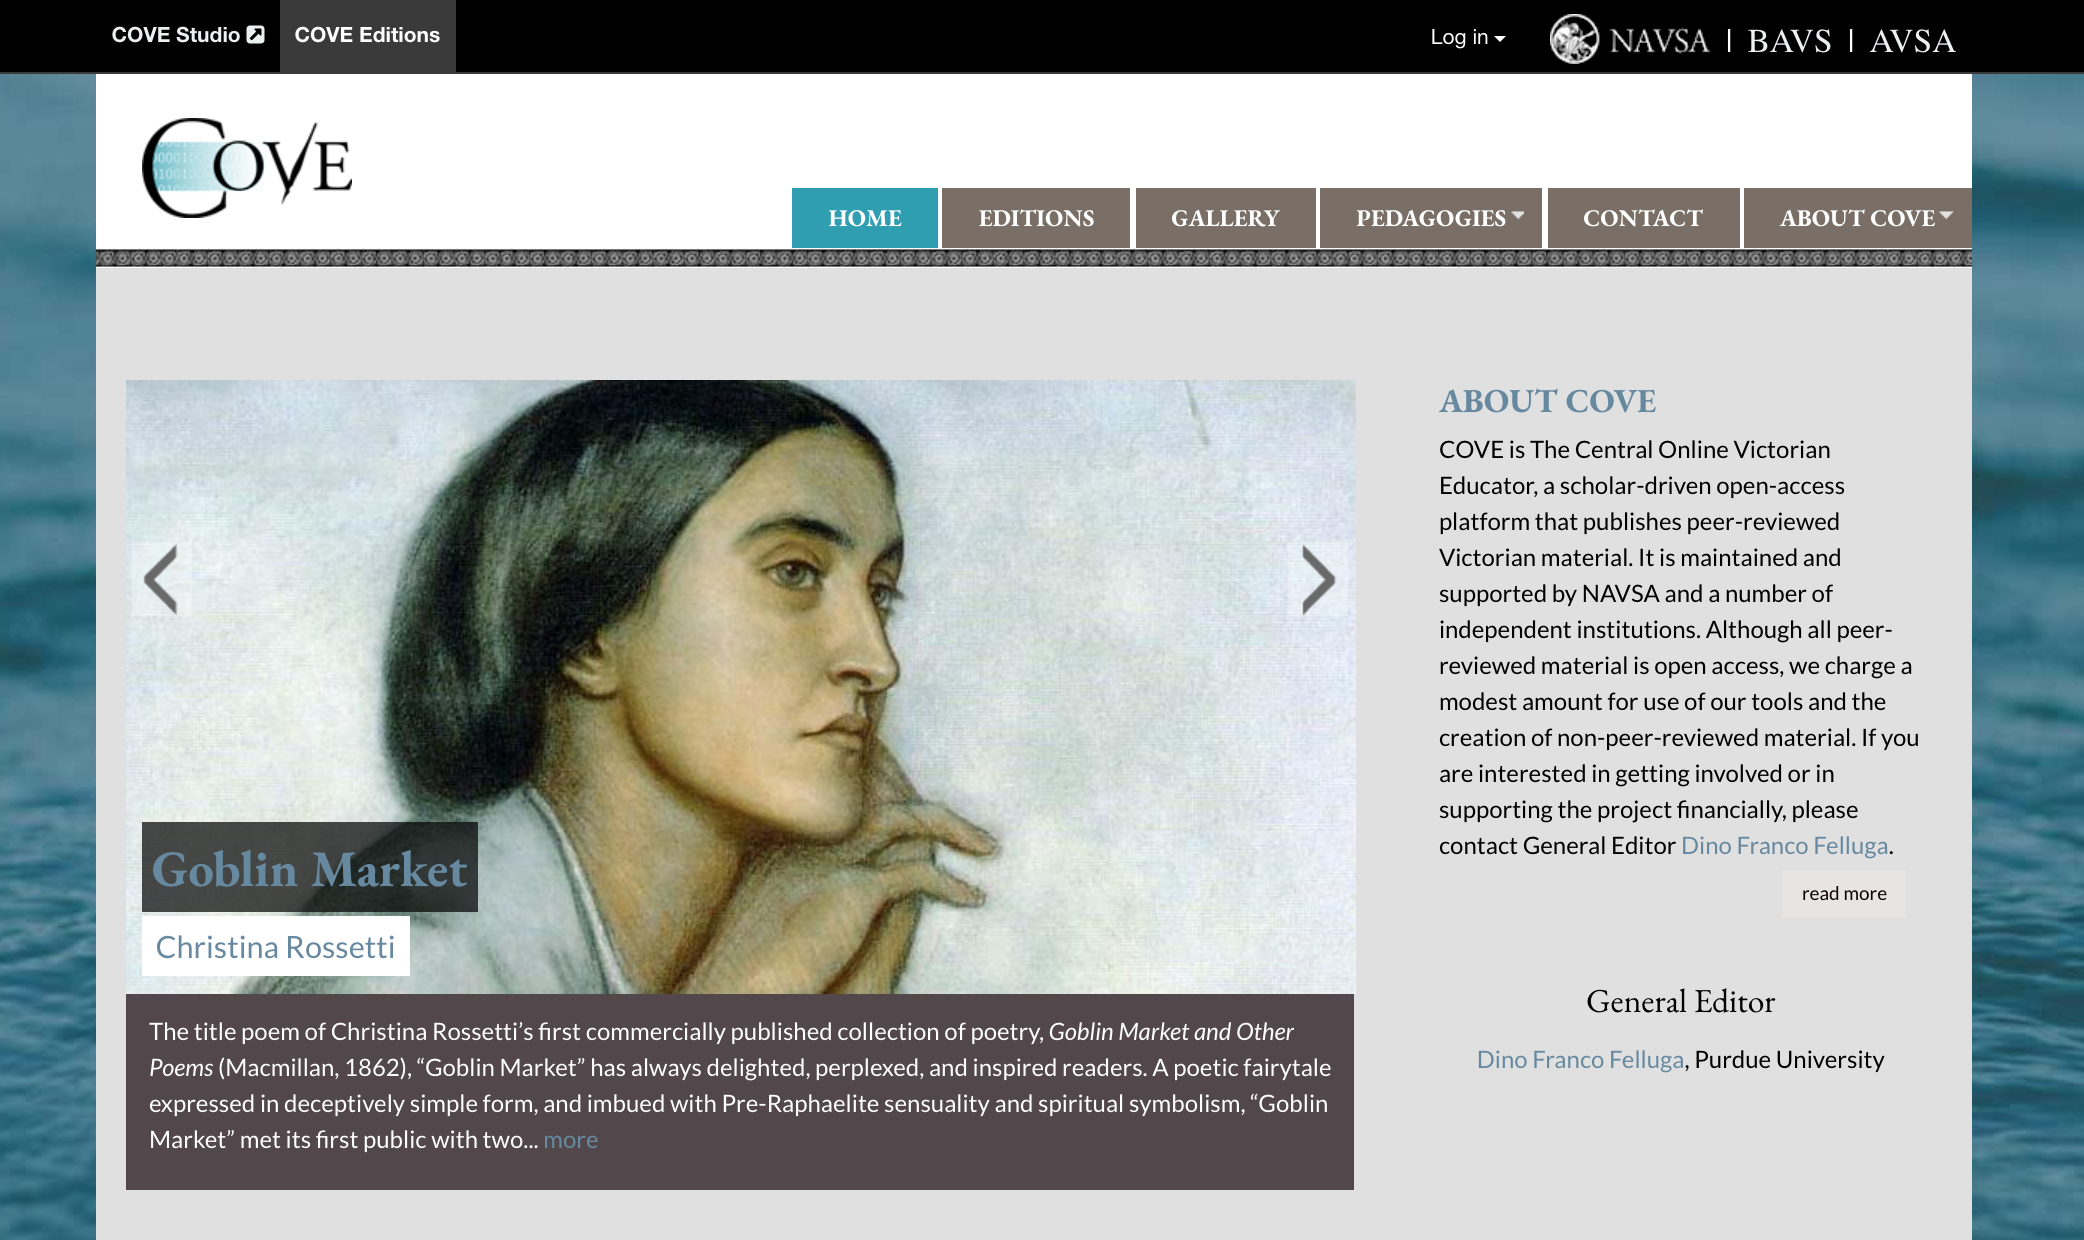 The COVE website's landing page